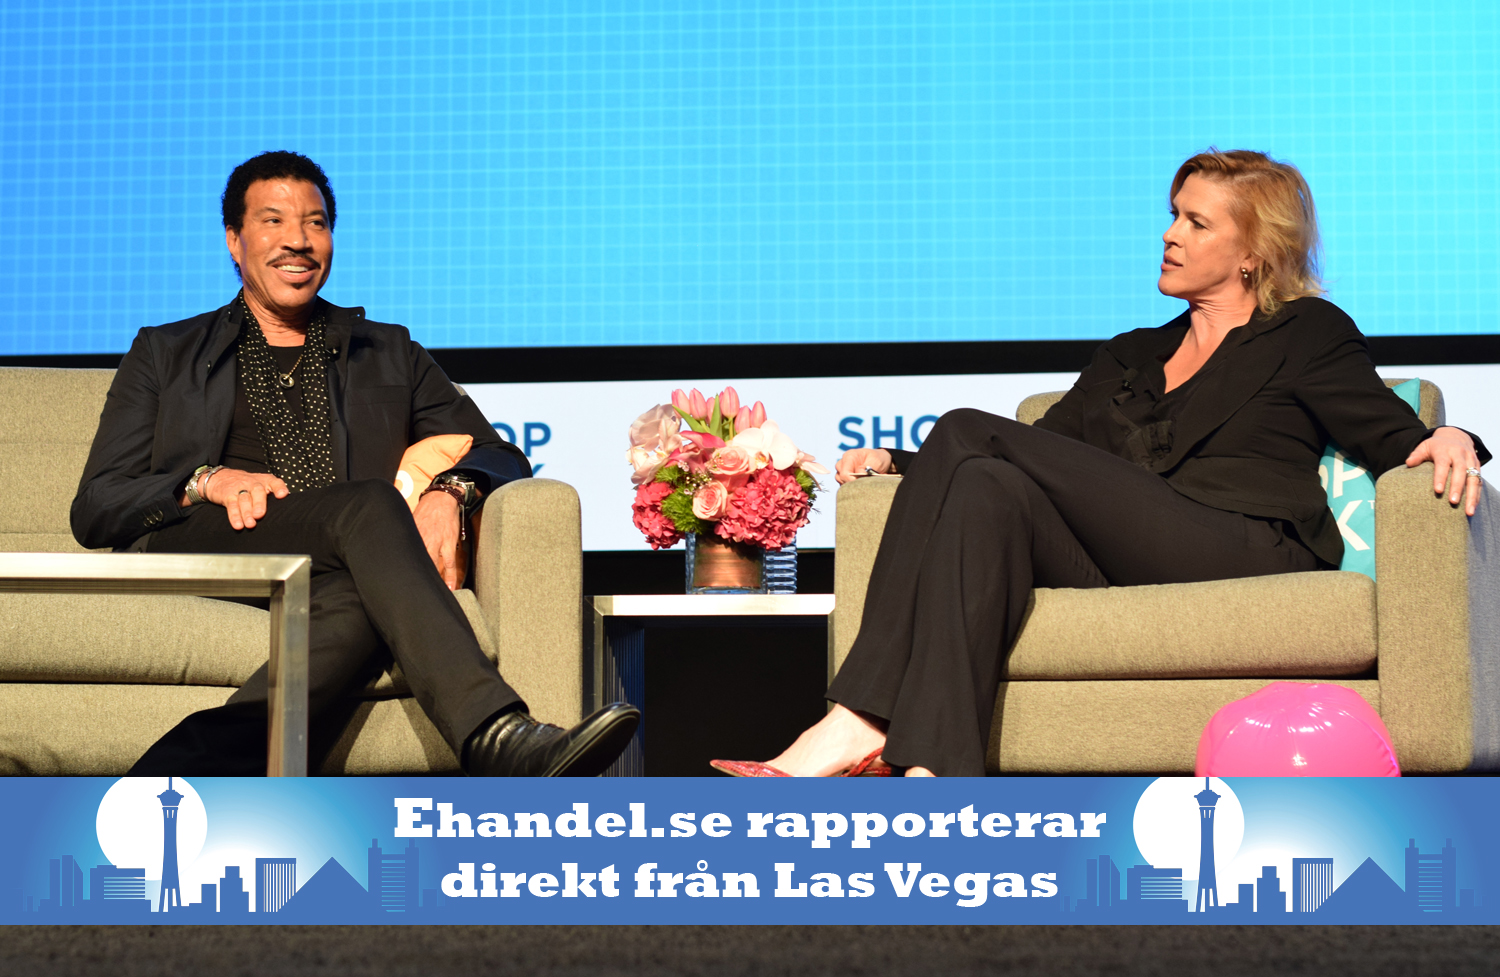 Ehandel.se i USA: Shoptalk 2017 invigt av Lionel Richie